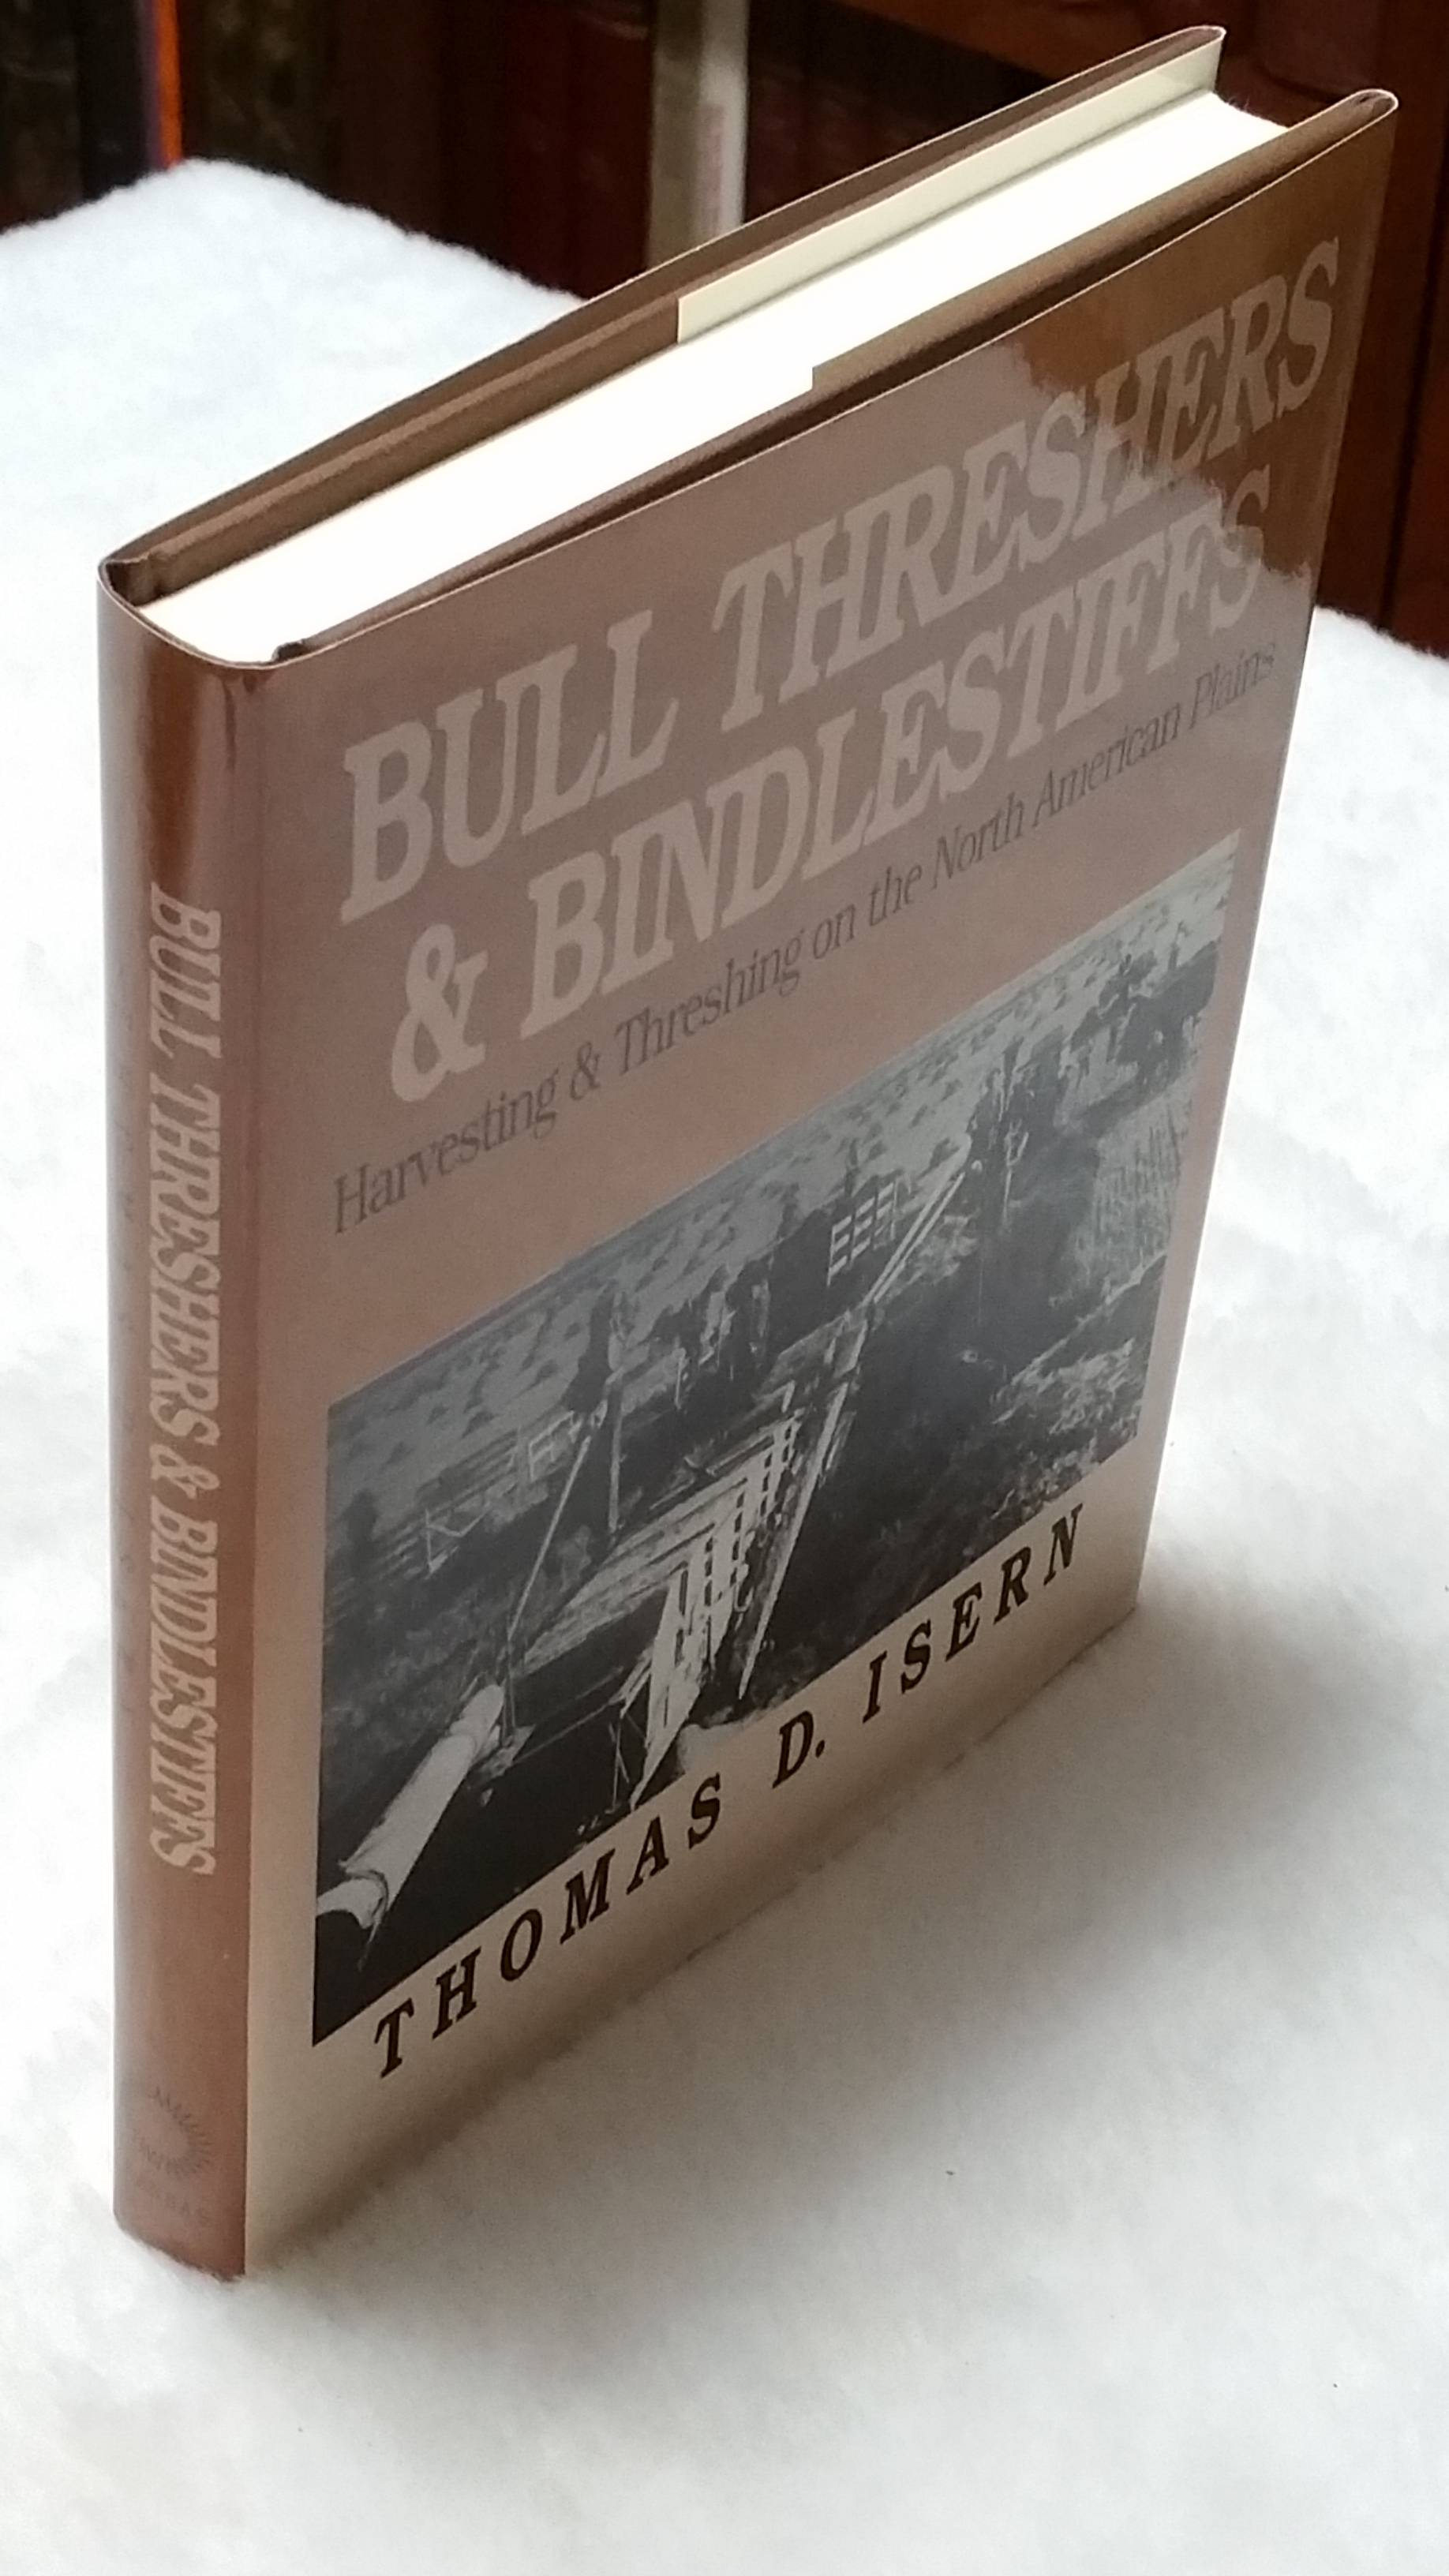 Image for Bull Threshers and Bindlestiffs: Harvesting and Threshing on the North American Plains